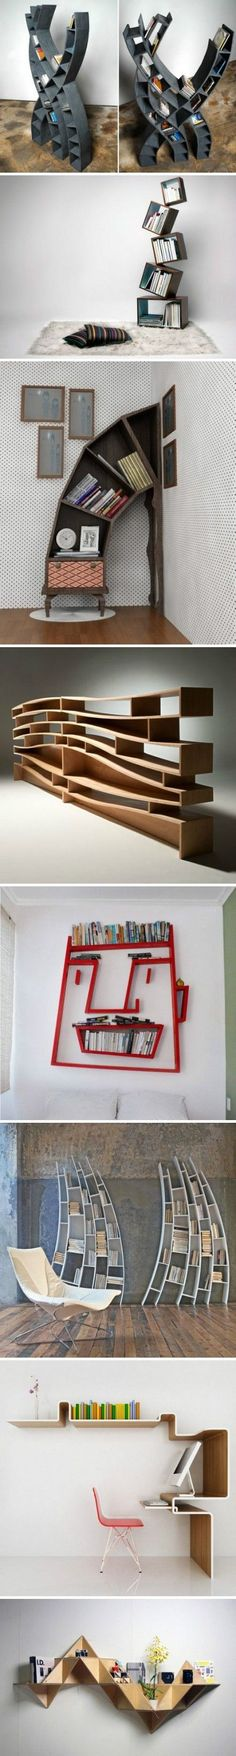 unique diy furniture. Interesting Diy Best DIY Furniture U0026 Shelf Ideas 2017  2018 Unique Book Shelves   These Would Look Cool In The Library To Diy